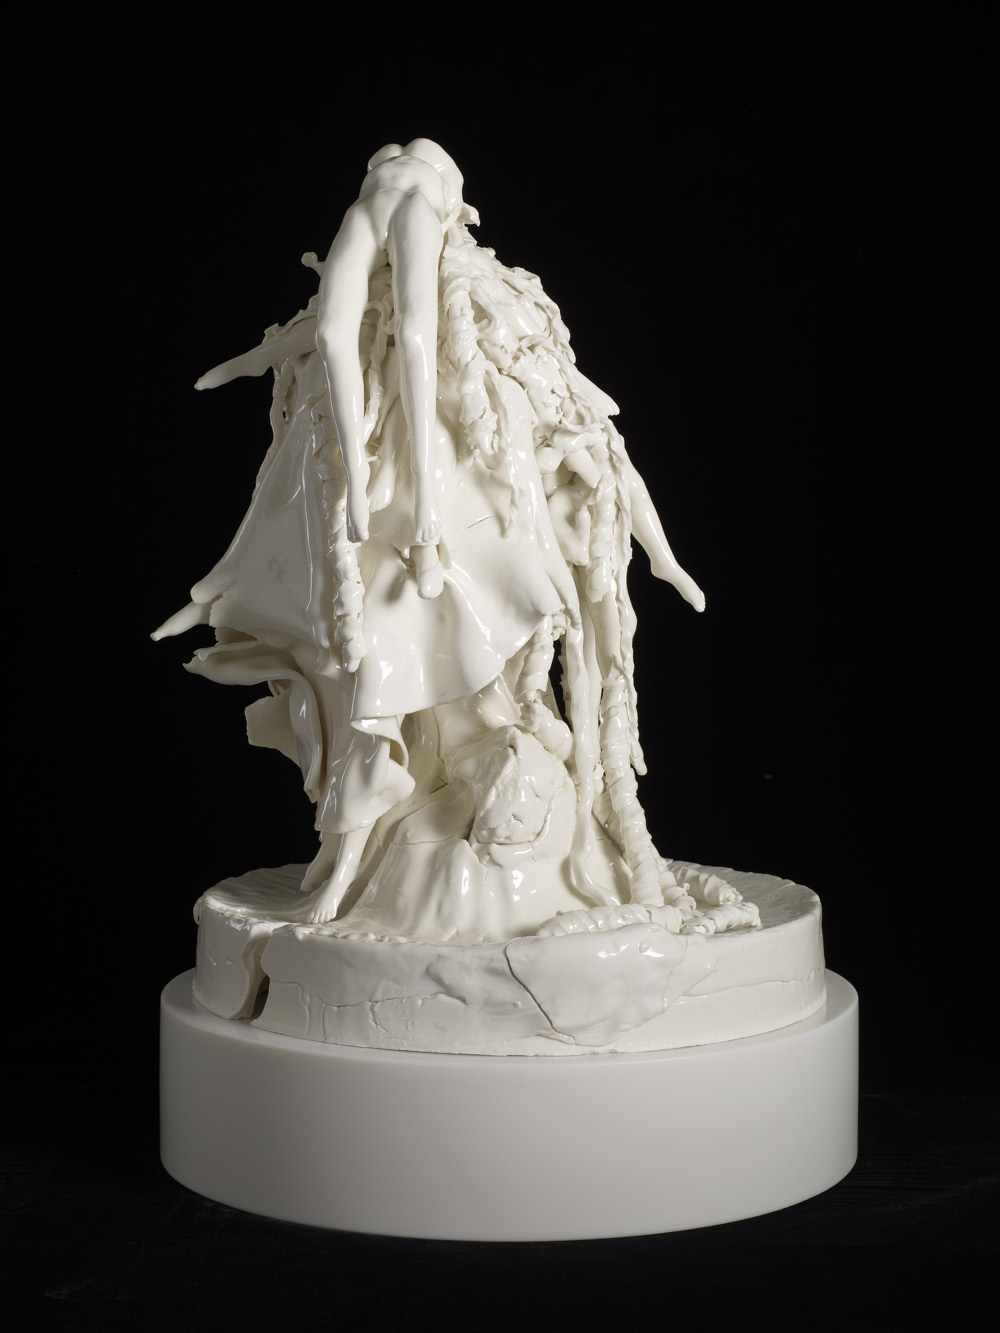 Rachel Kneebone,  All words choke me , 2012, Porcelain, Height: 62 x Ø 42.5 cm, Courtesy of White Cube, London and Stephen White